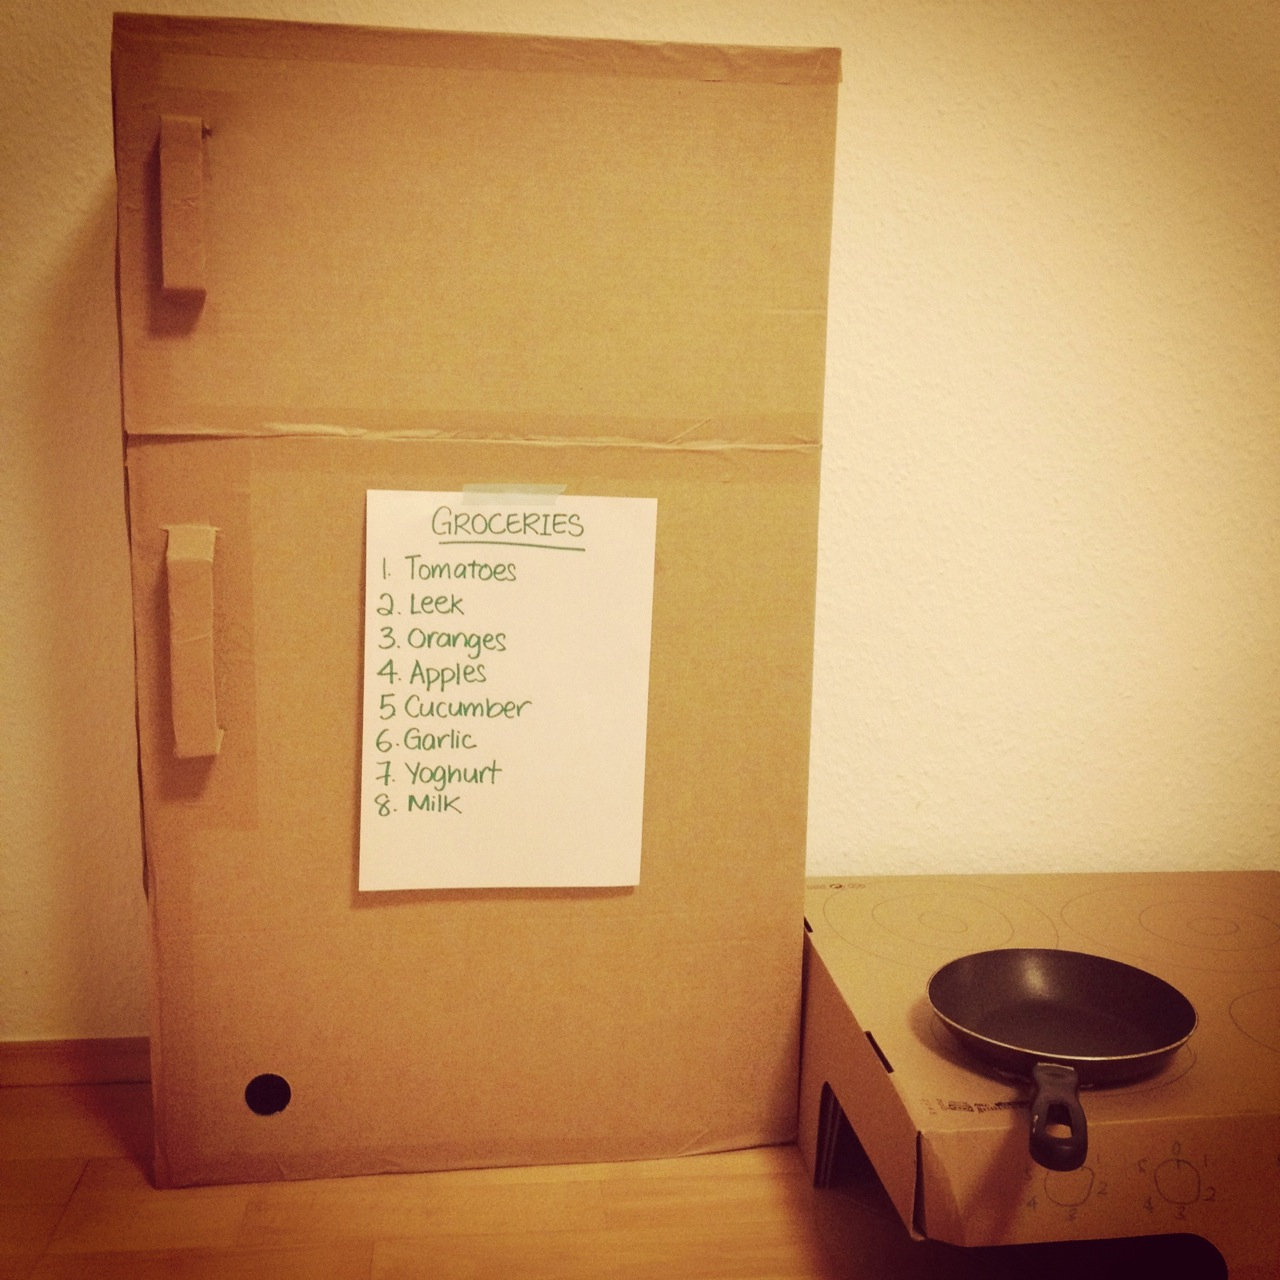 Mum in the making: Monday Made: The cardboard fridge